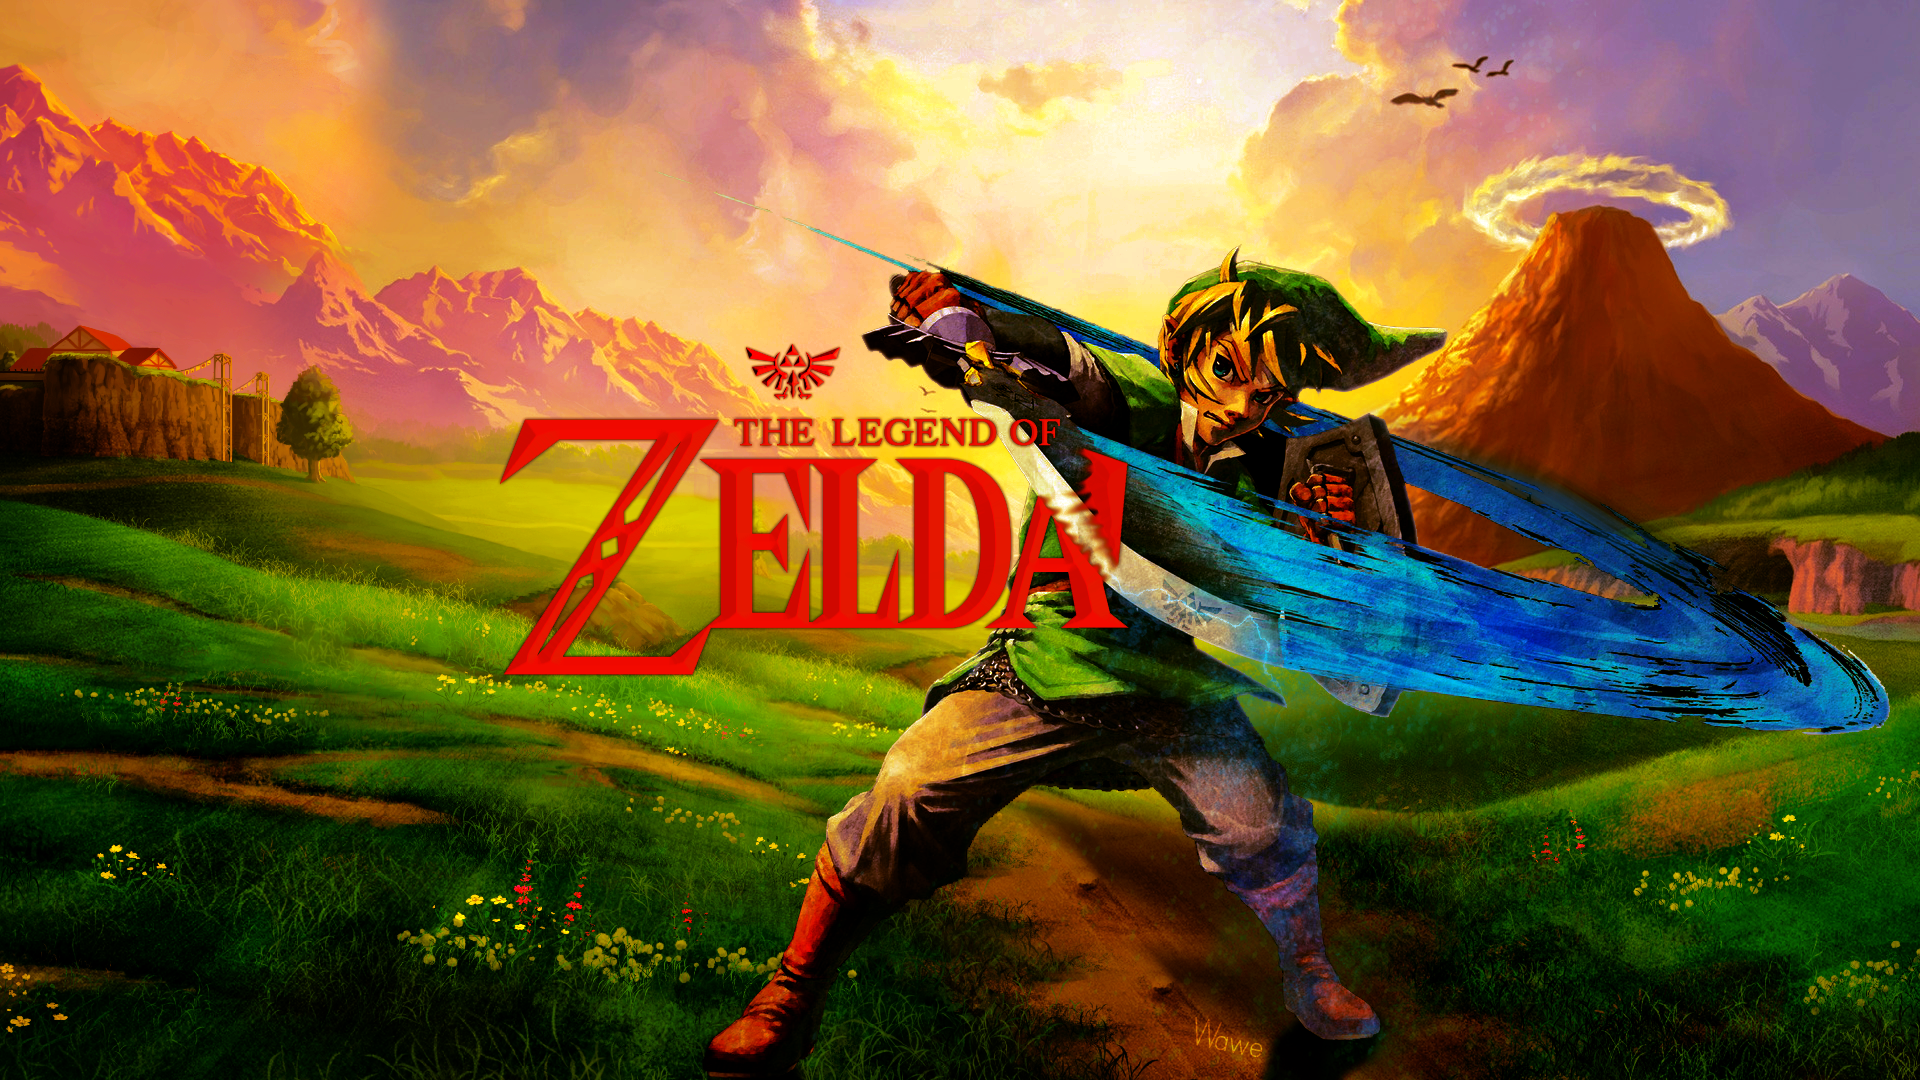 Legend of Zelda Wallpaper by WaweAKAExrel on DeviantArt